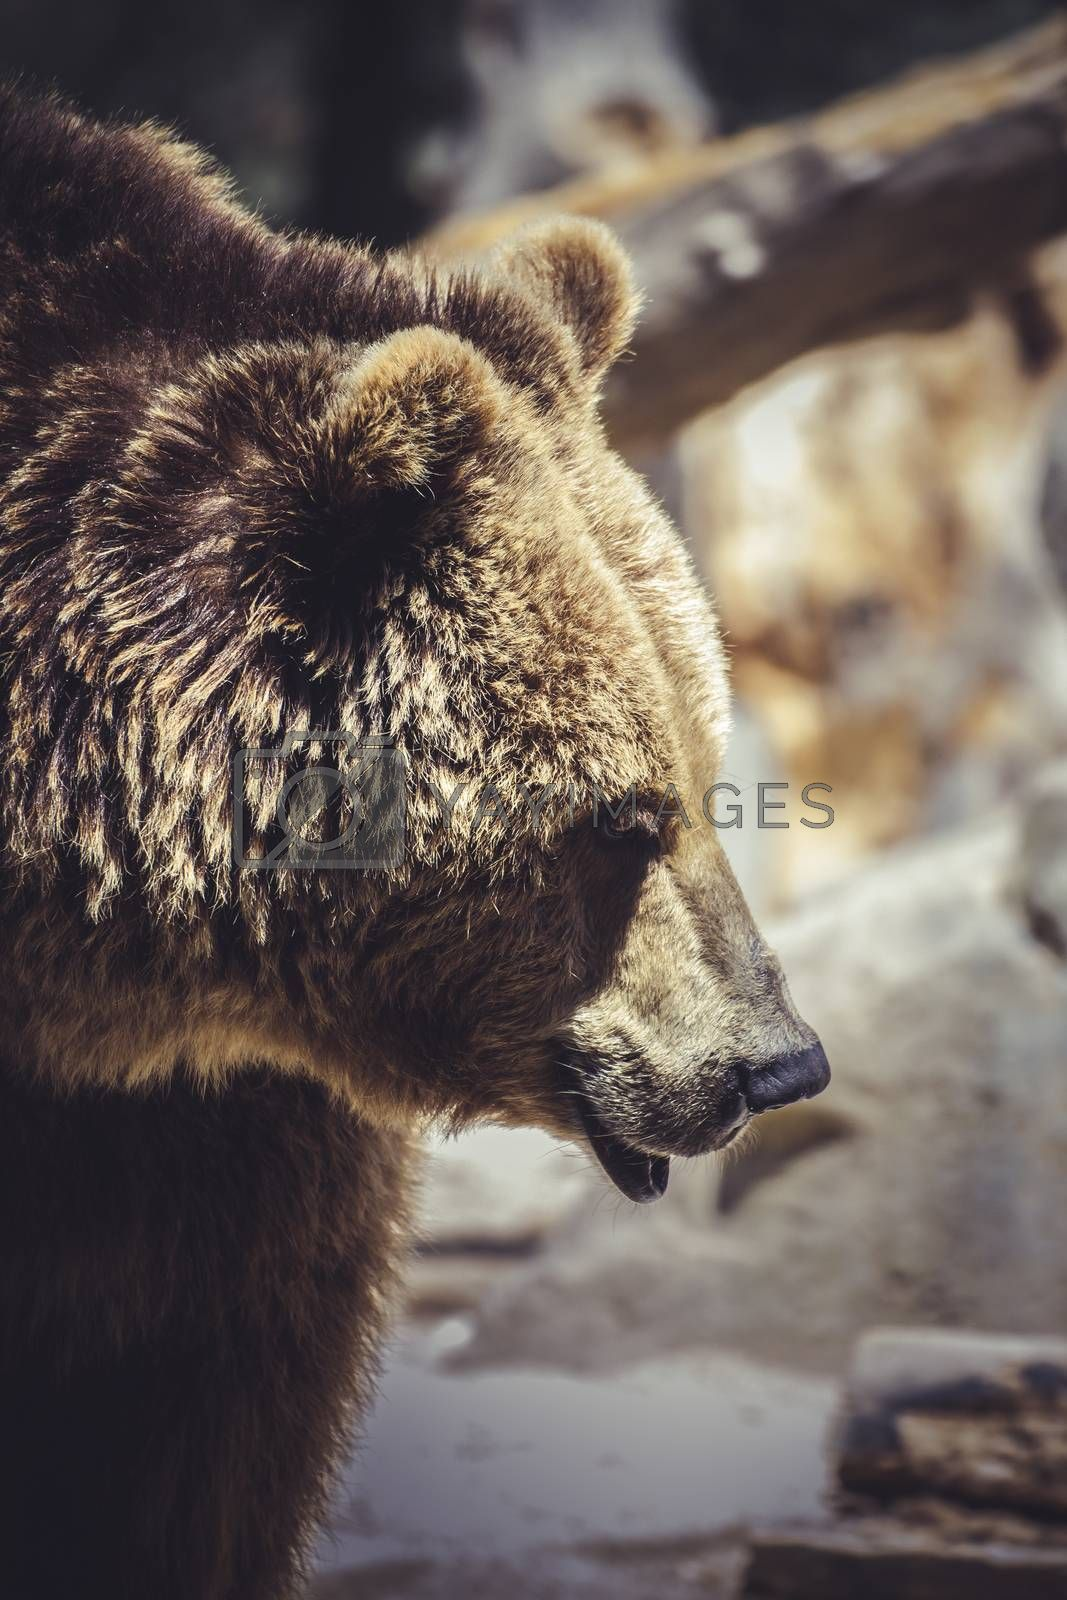 mammal, Spanish powerful brown bear, huge and strong  wild animal